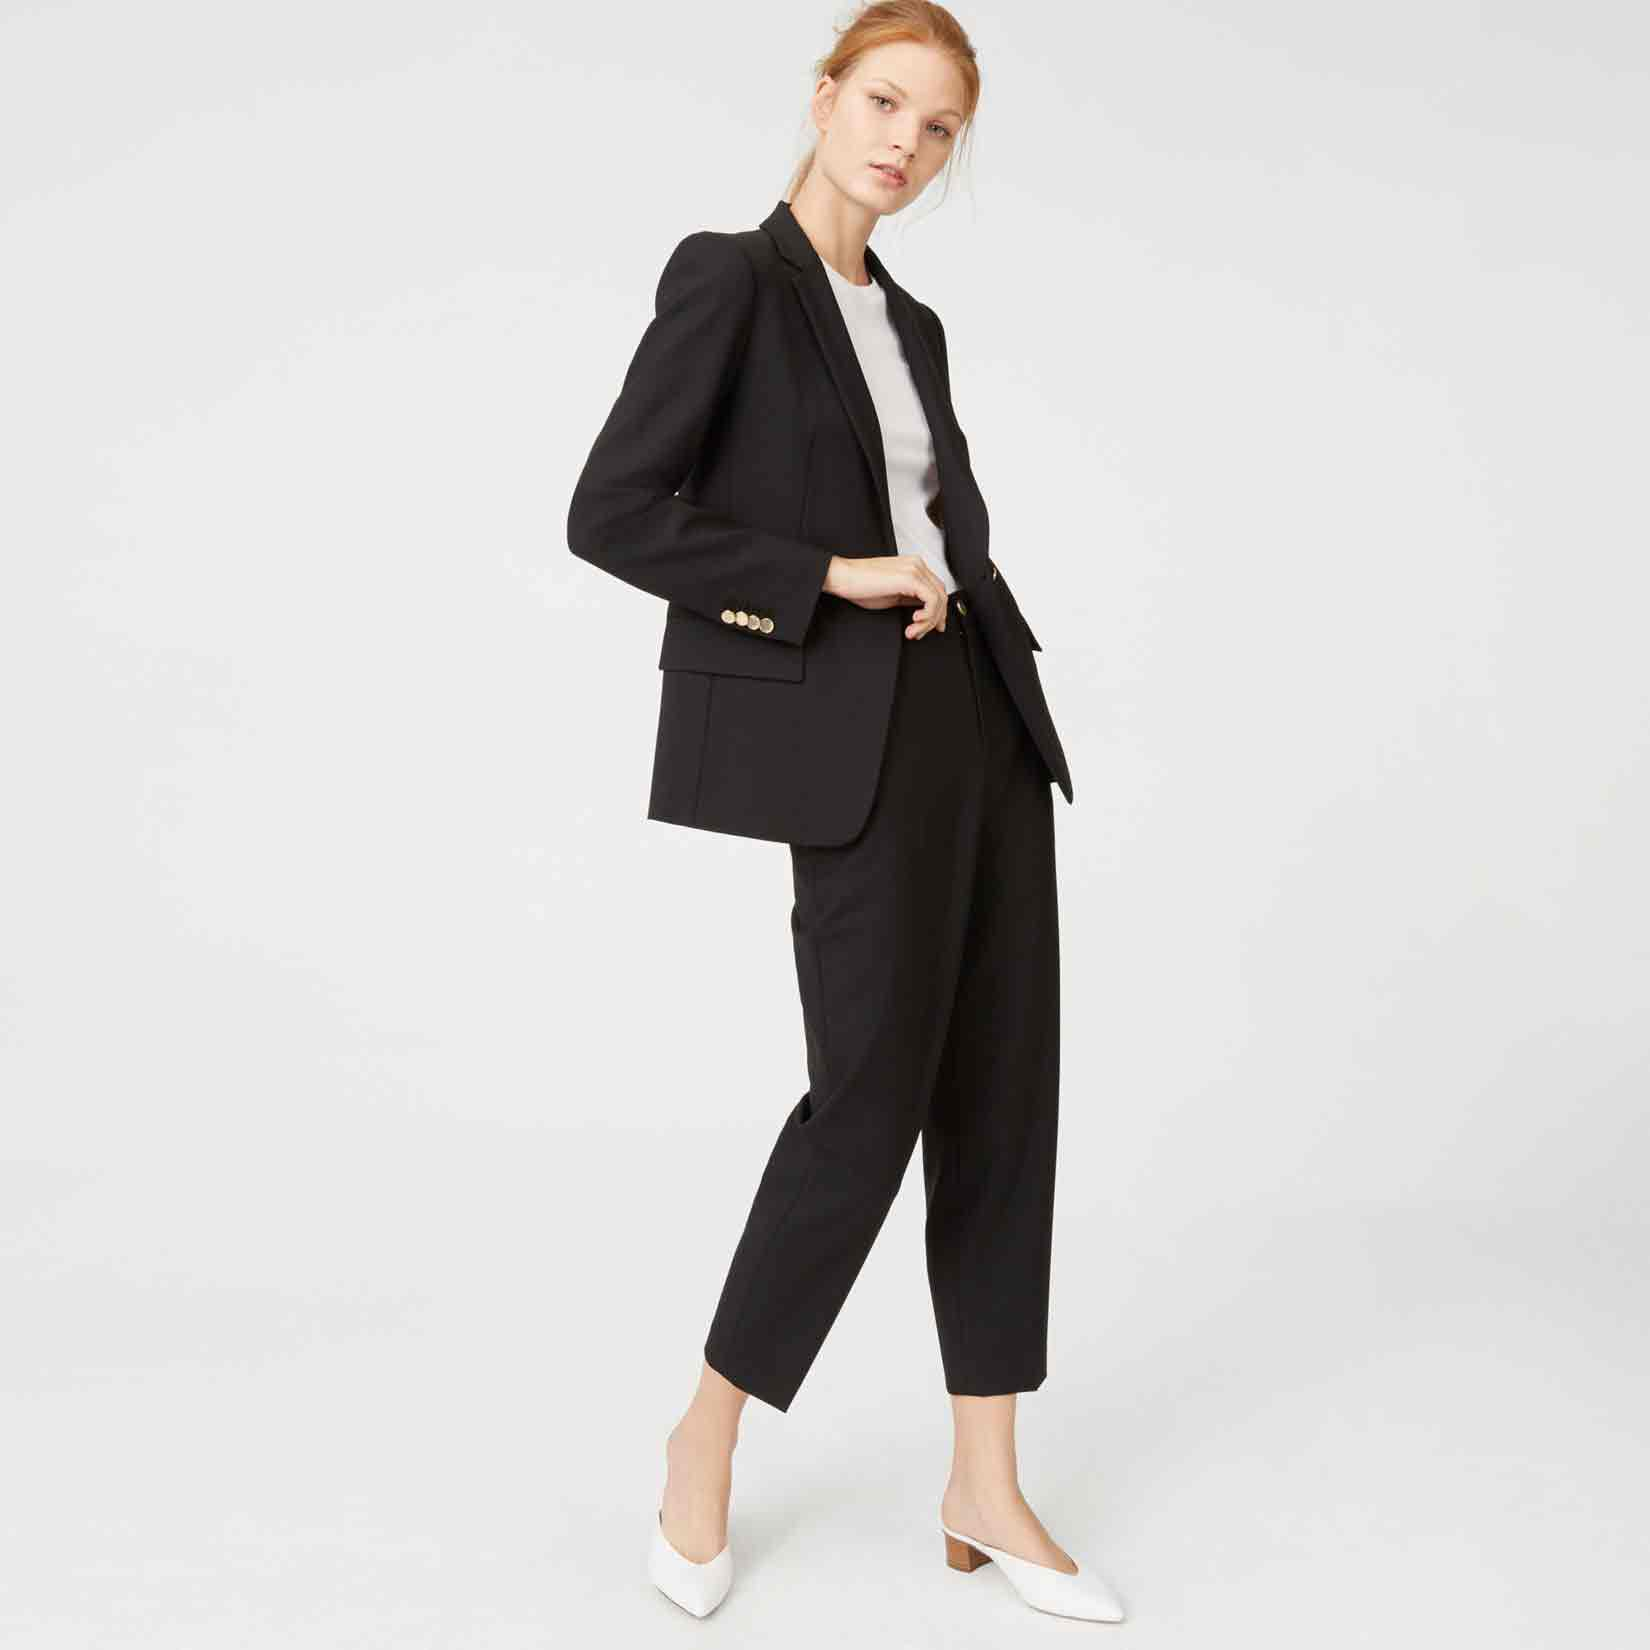 Best black business suits for ladies in Pakistan